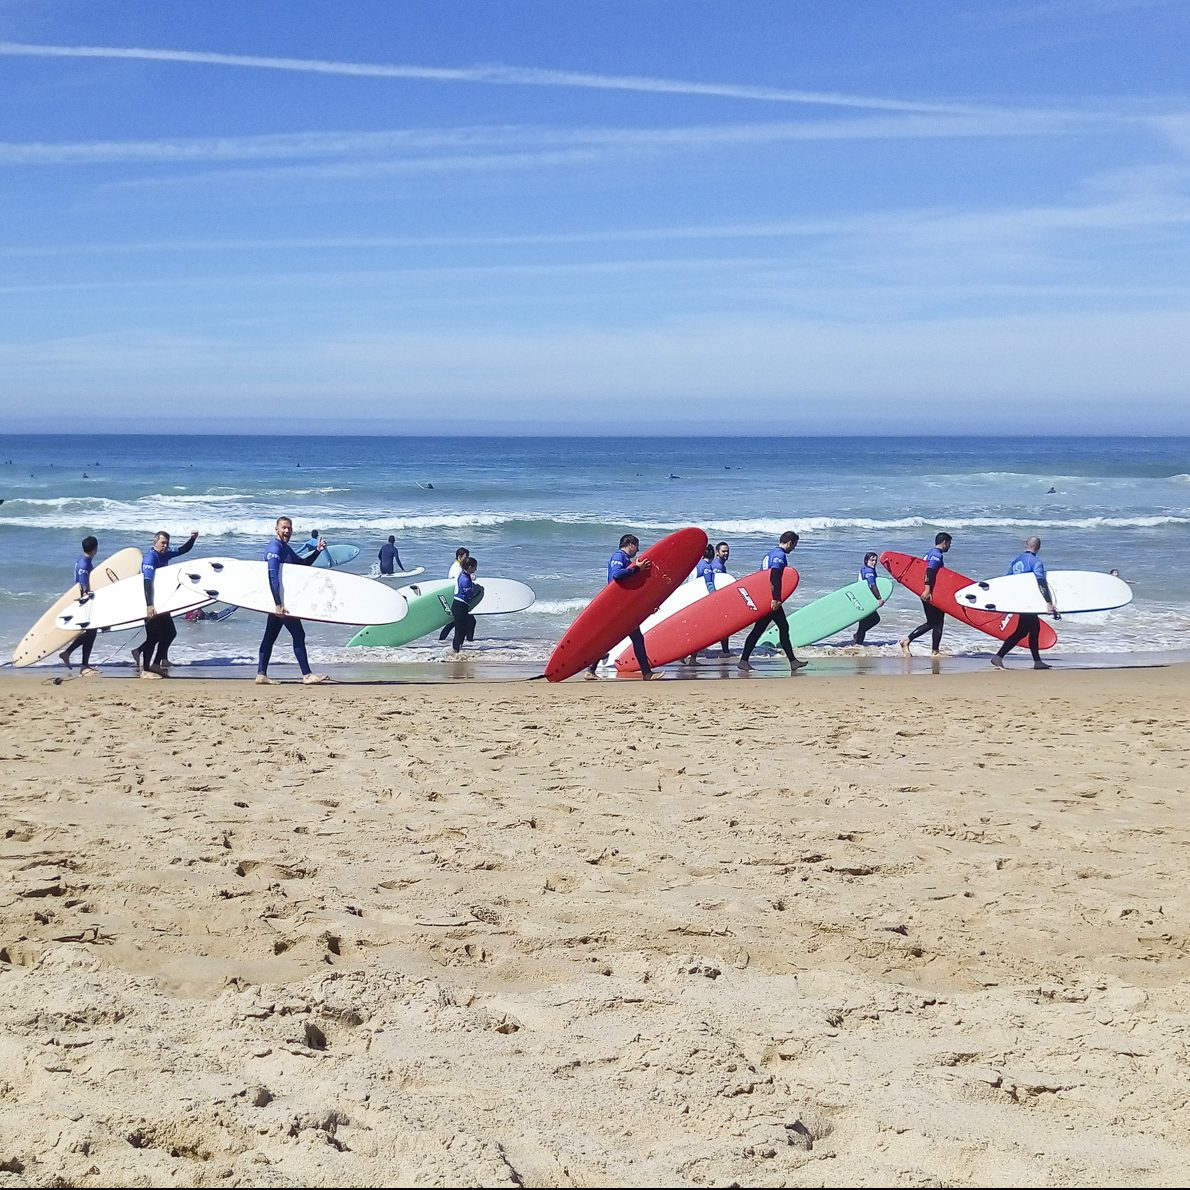 darling associates team surfing in portugal